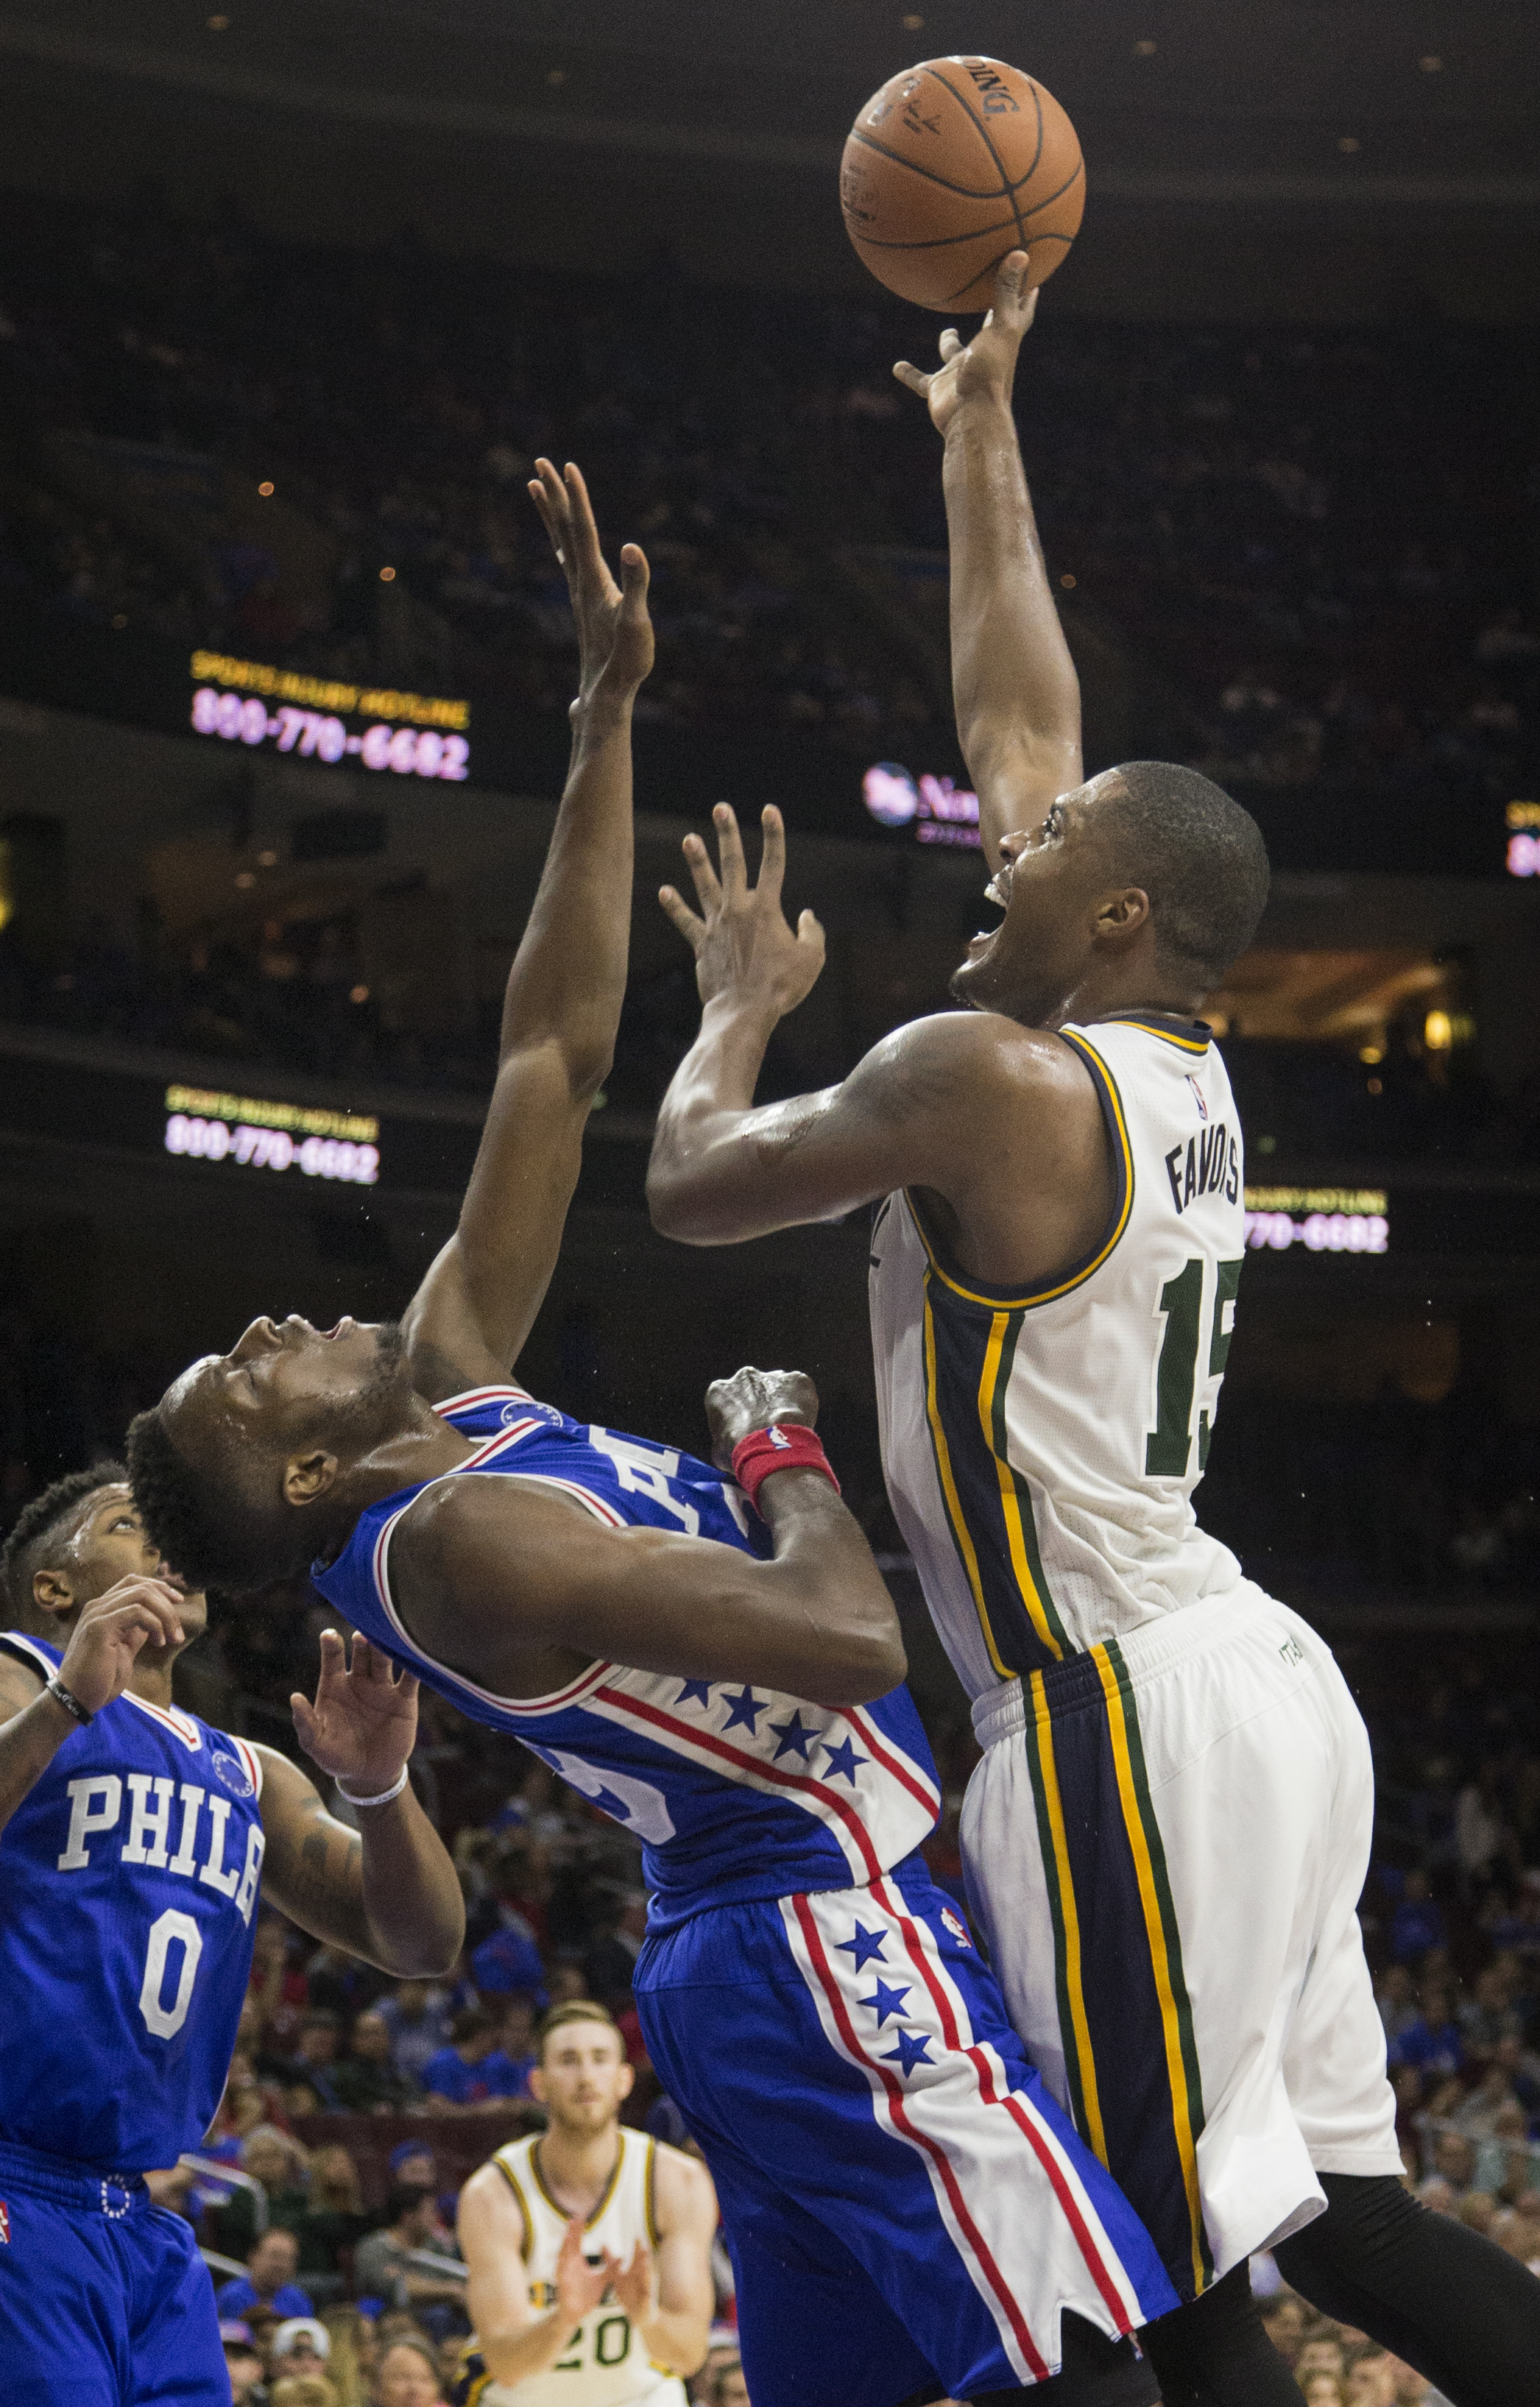 Utah Jazz forward Derrick Favors (15) shots over Philadelphia 76ers' Jerami Grant (39) in the second half of an NBA basketball game, Friday, Oct. 30, 2015, in Philadelphia. The Utah Jazz won 99-71. (AP Photo/Laurence Kesterson)